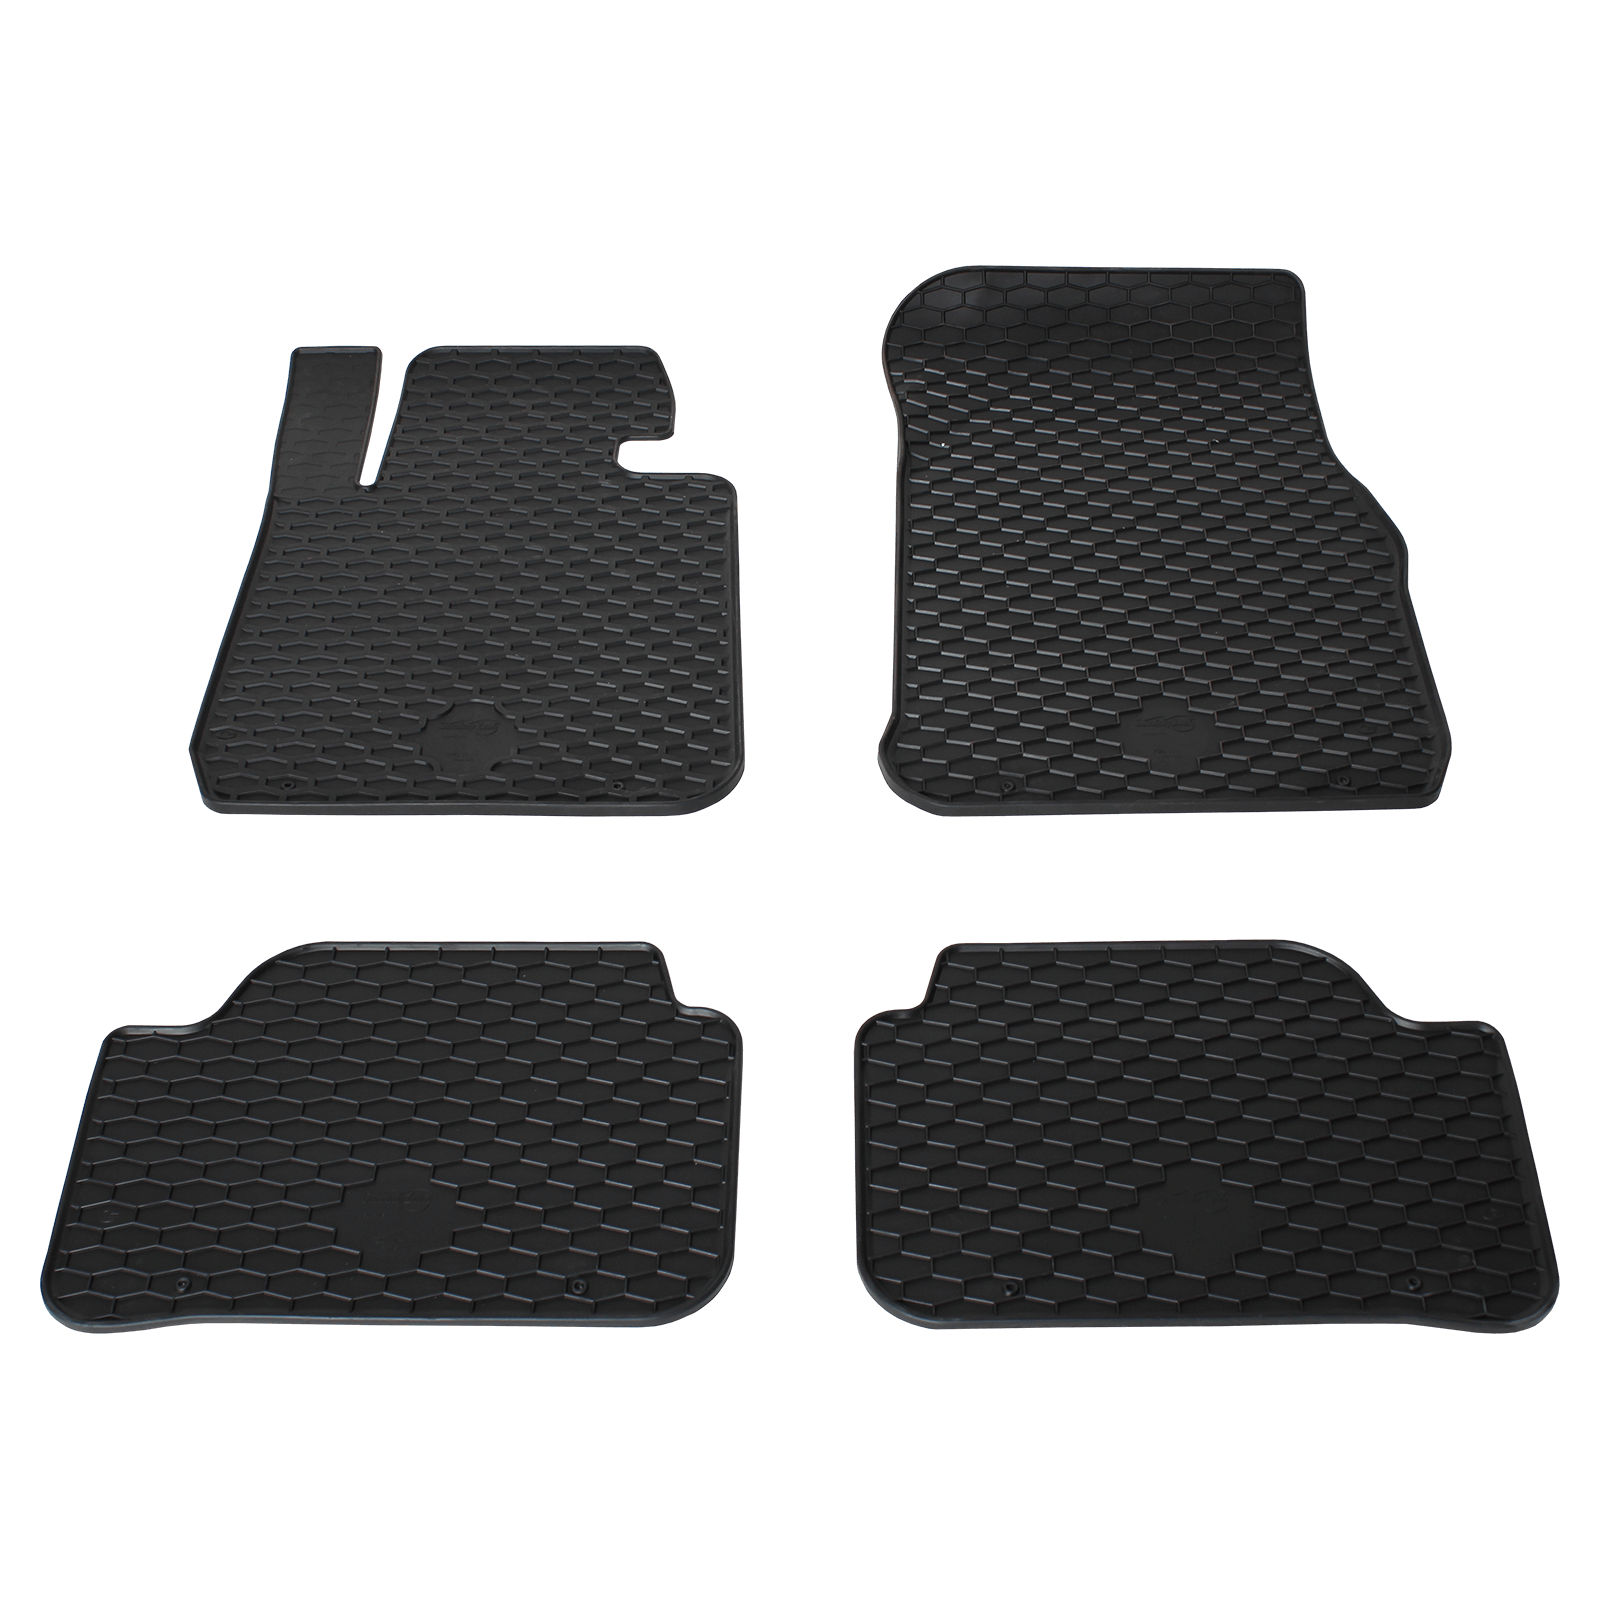 tapis de sol en caoutchouc noir pour bmw 1 bj. Black Bedroom Furniture Sets. Home Design Ideas